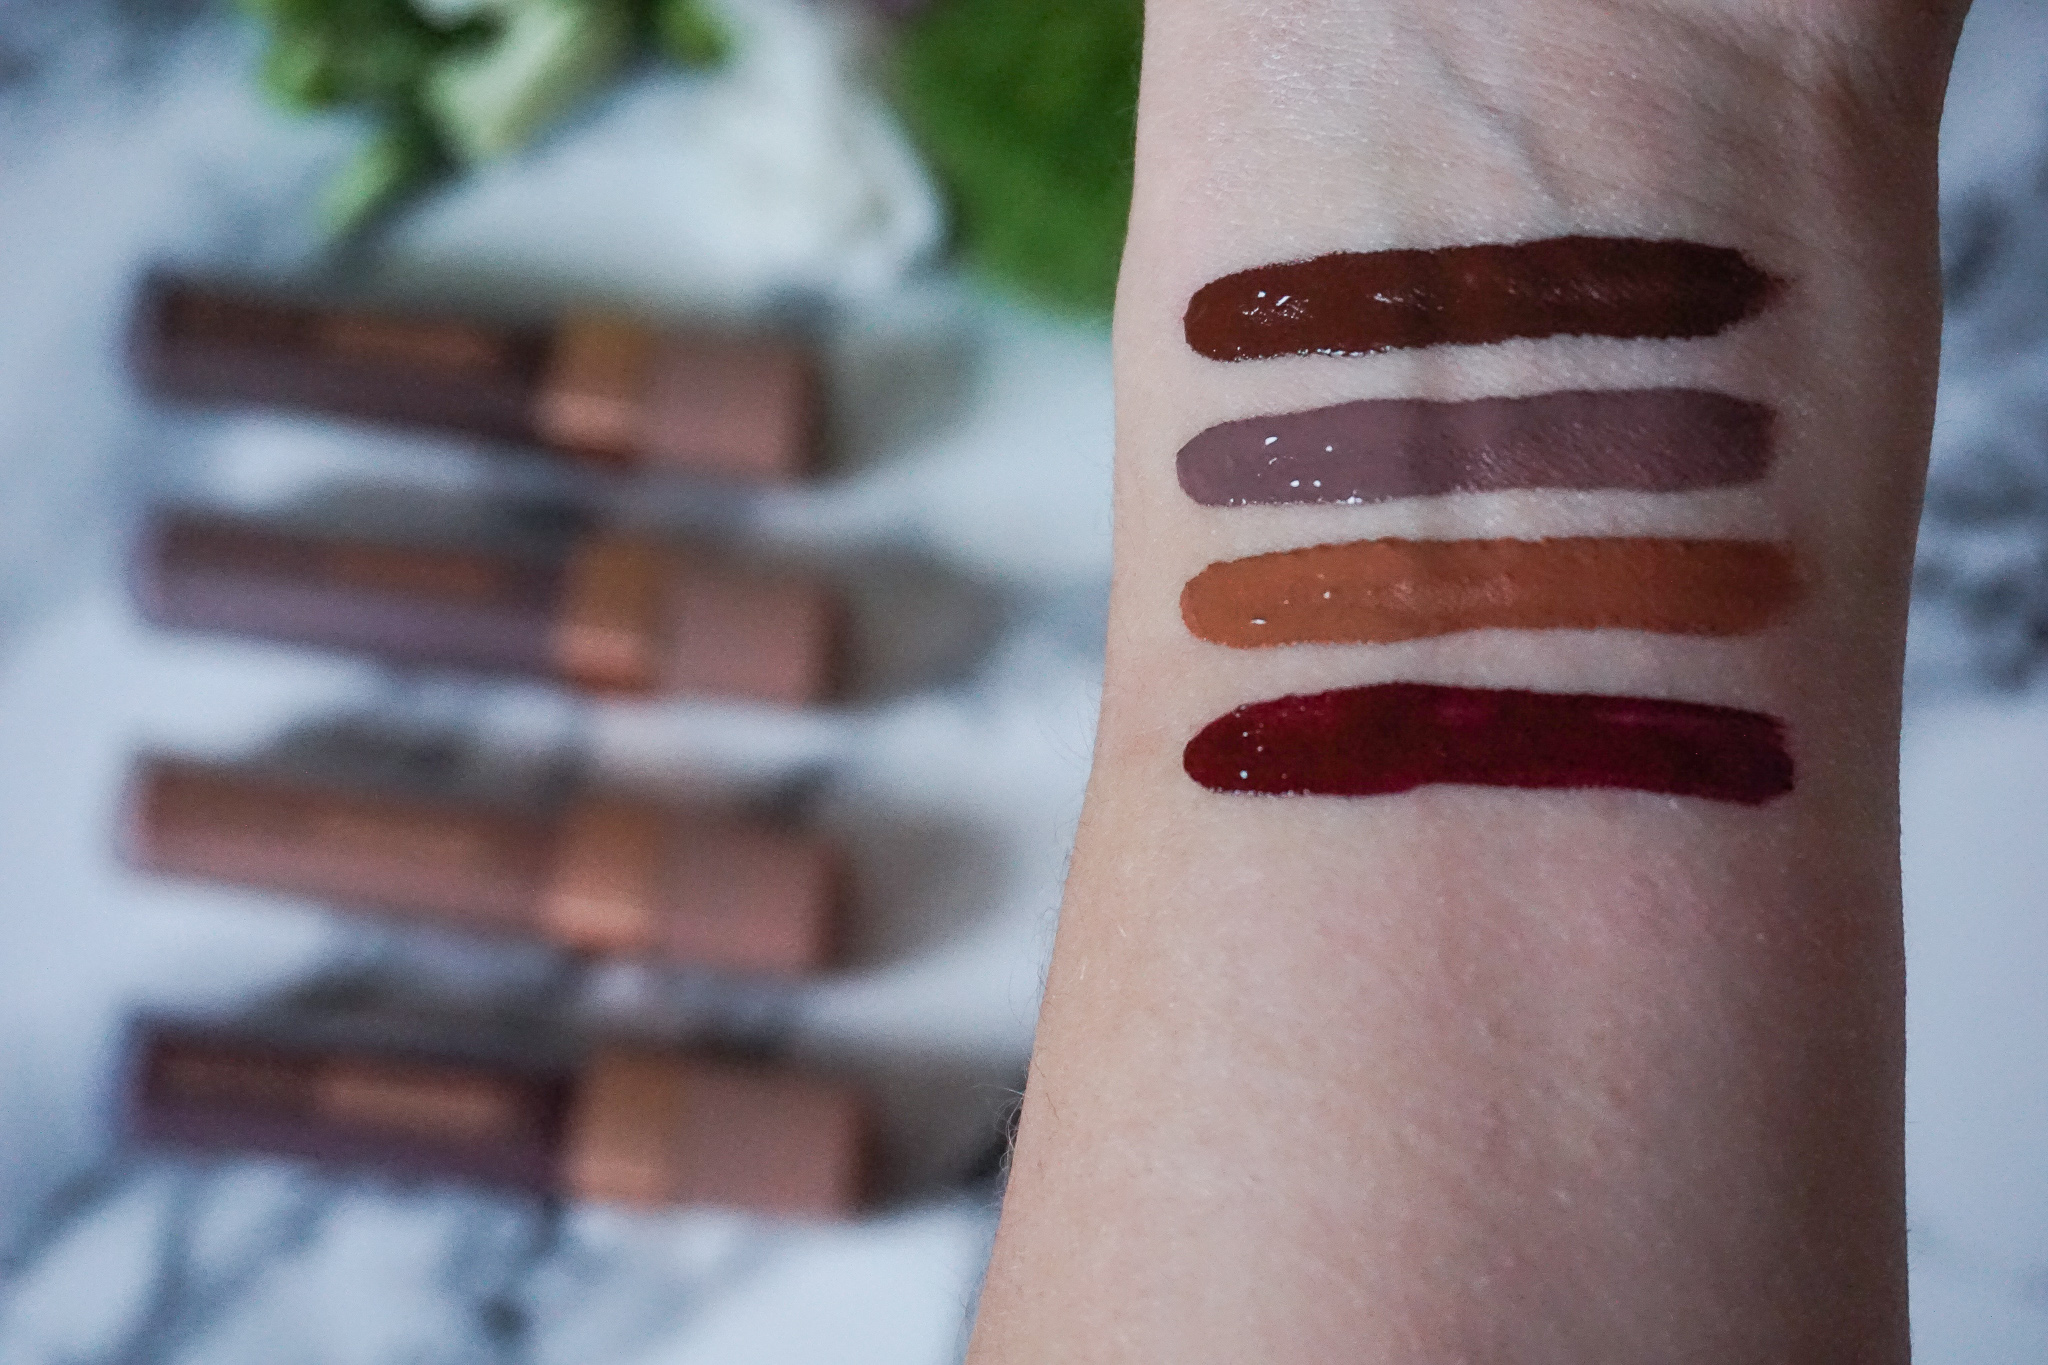 L'Oréal Les Chocolats Ultra Matte Liquid Lipstick Review Swatches